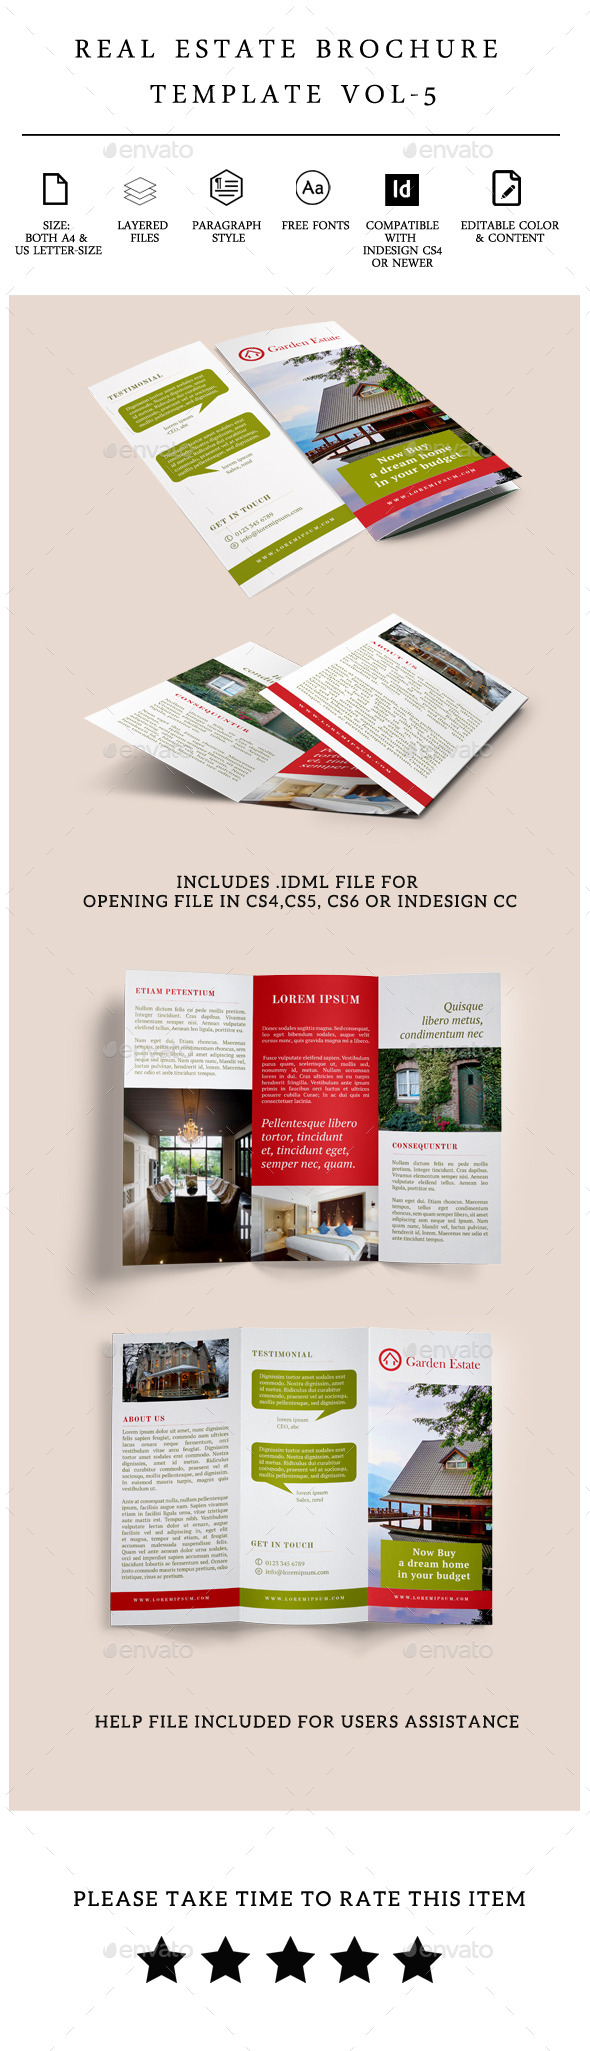 luxury brochure template - luxury real estate brochure templates